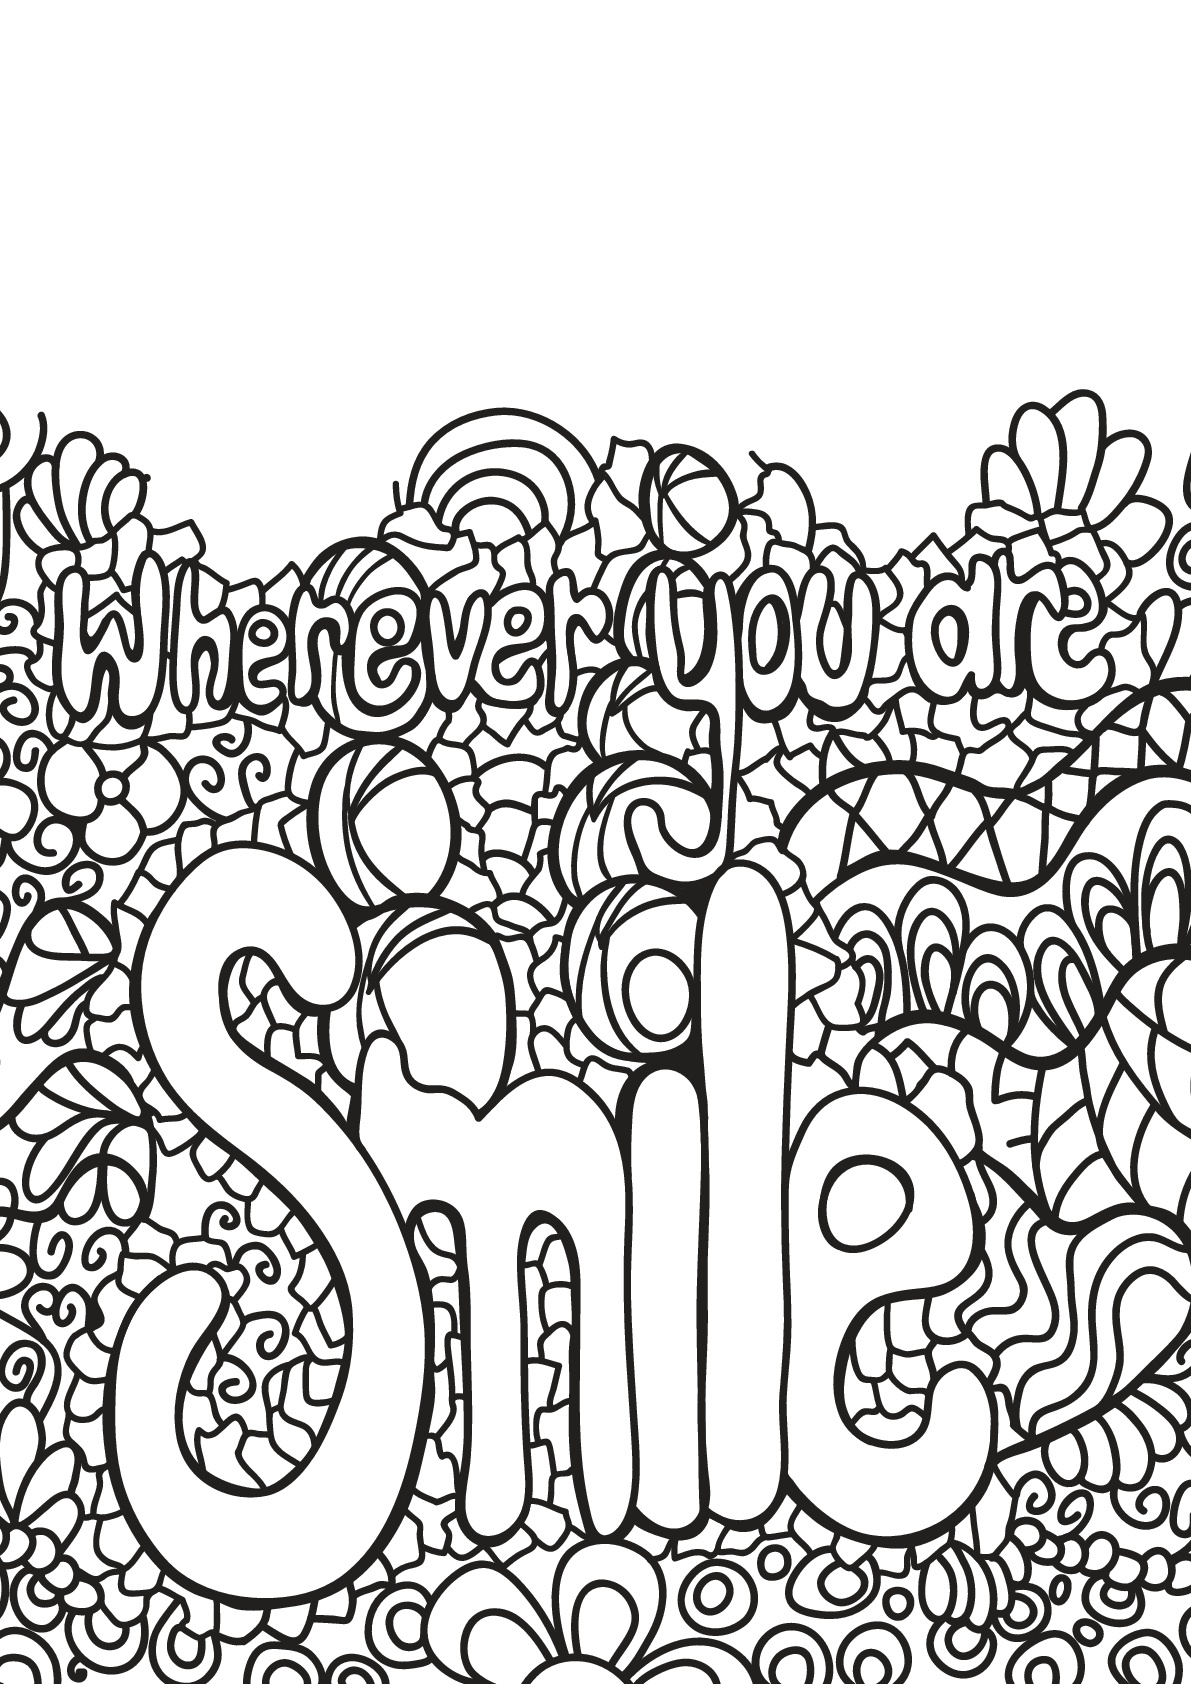 Free book quote 3 - Quotes Adult Coloring Pages